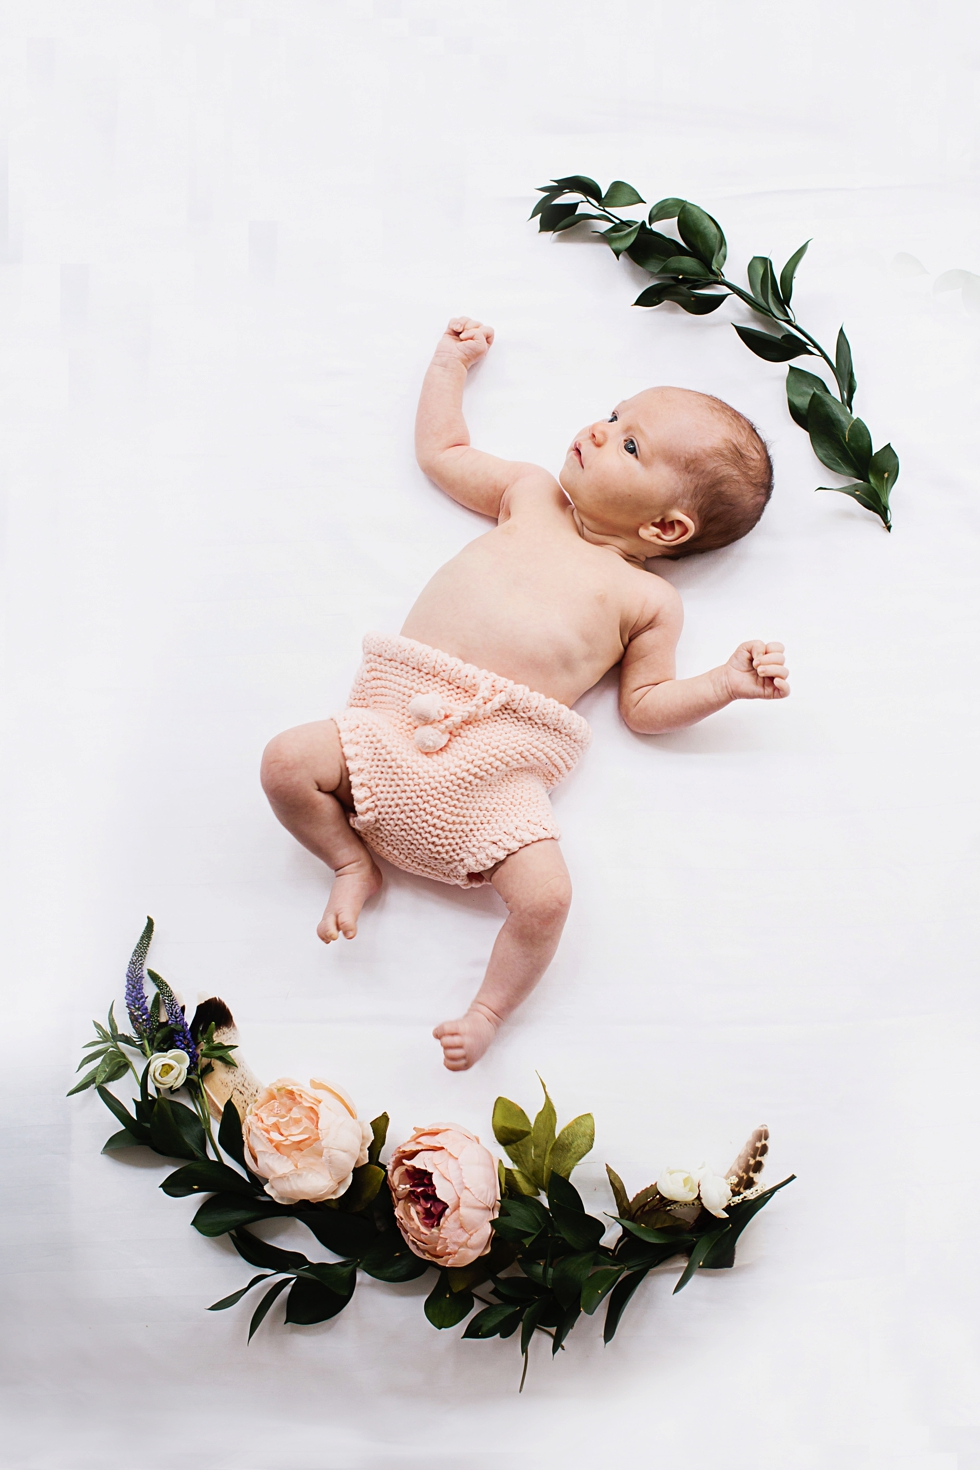 01_Ashley-Bouder-NYCB-Family-Newborn-photography--NEWYORK-quincenmulberry